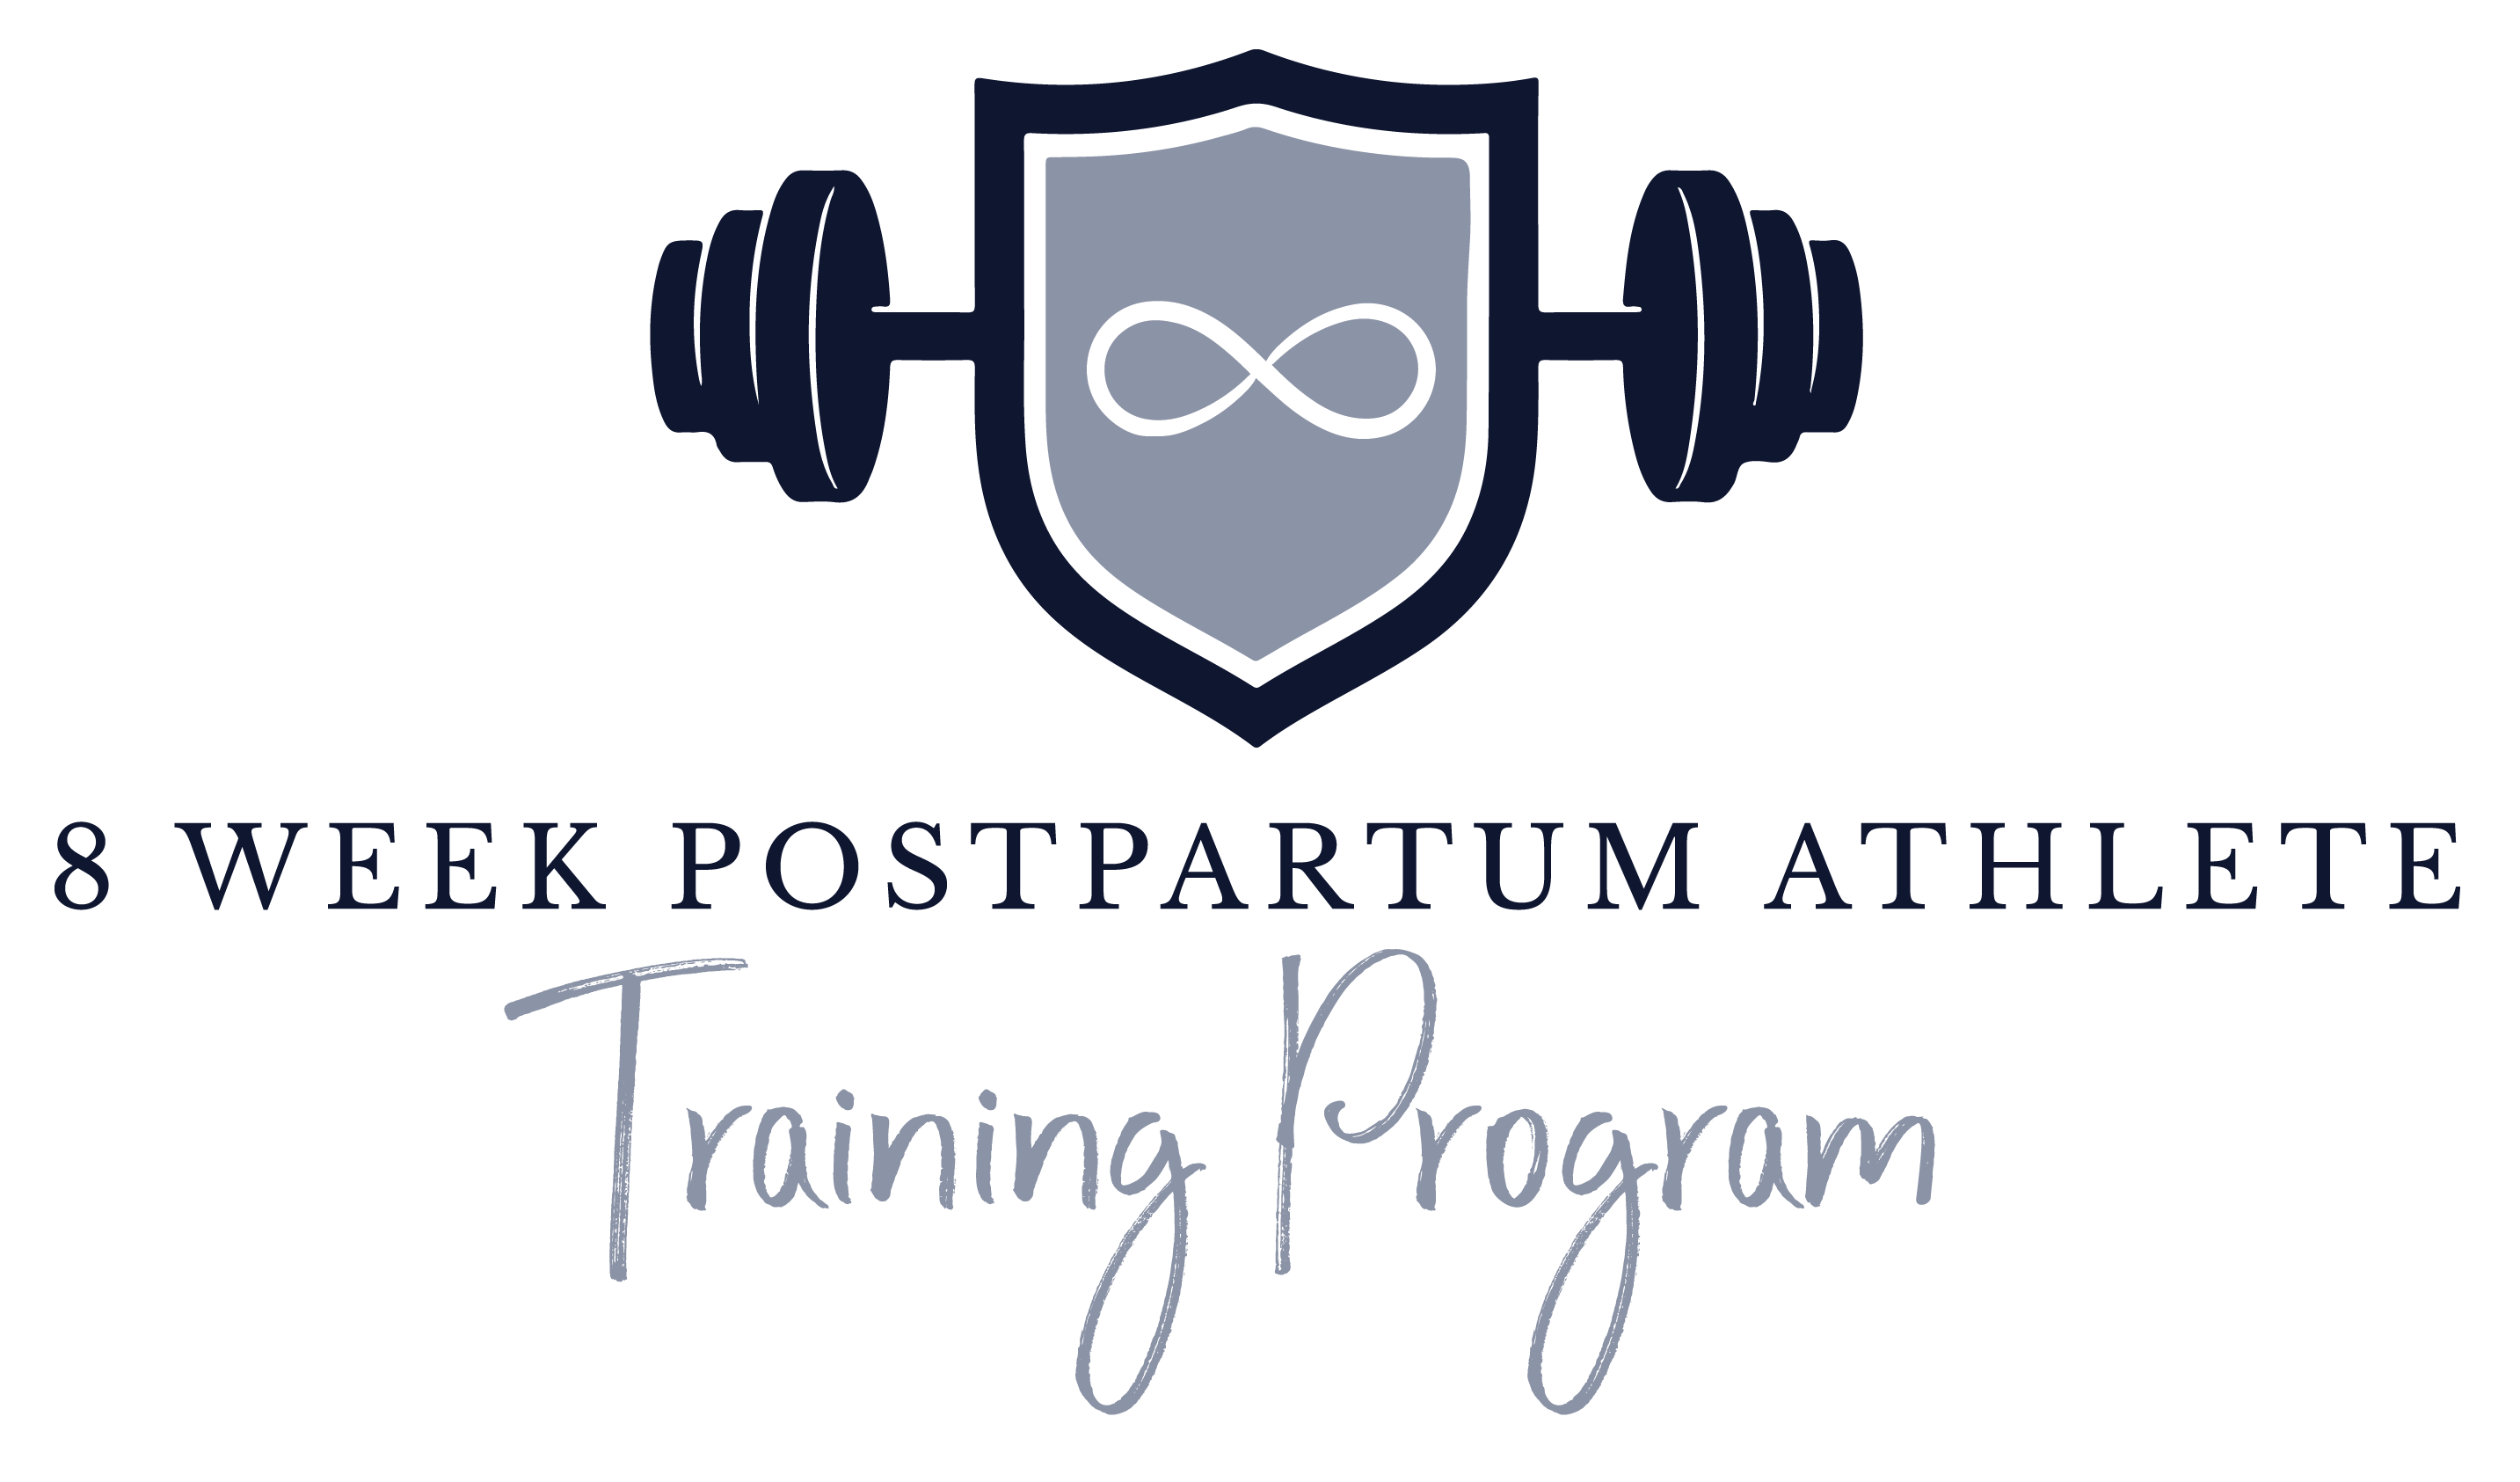 8 Week Postpartum Athlete Training Program (NEW) | Brianna